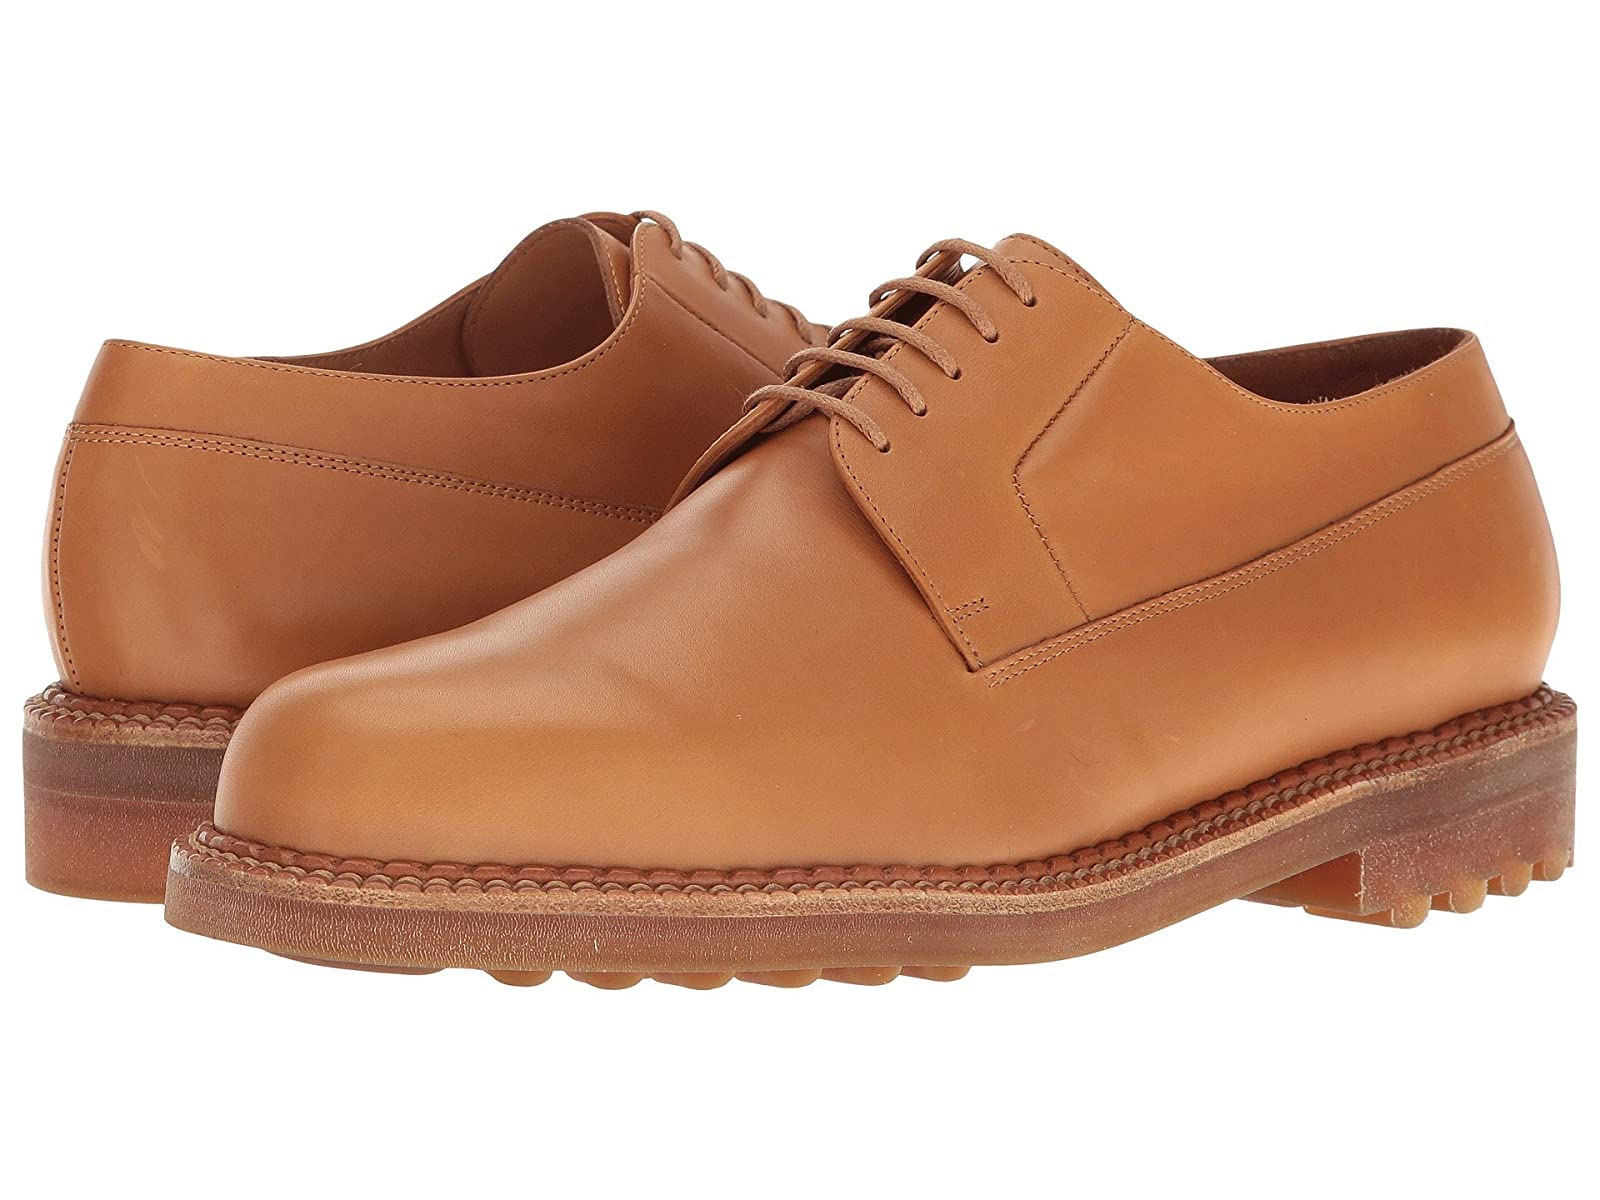 Clergerie Doc OxfordCheap and distinctive eye-catching shoes